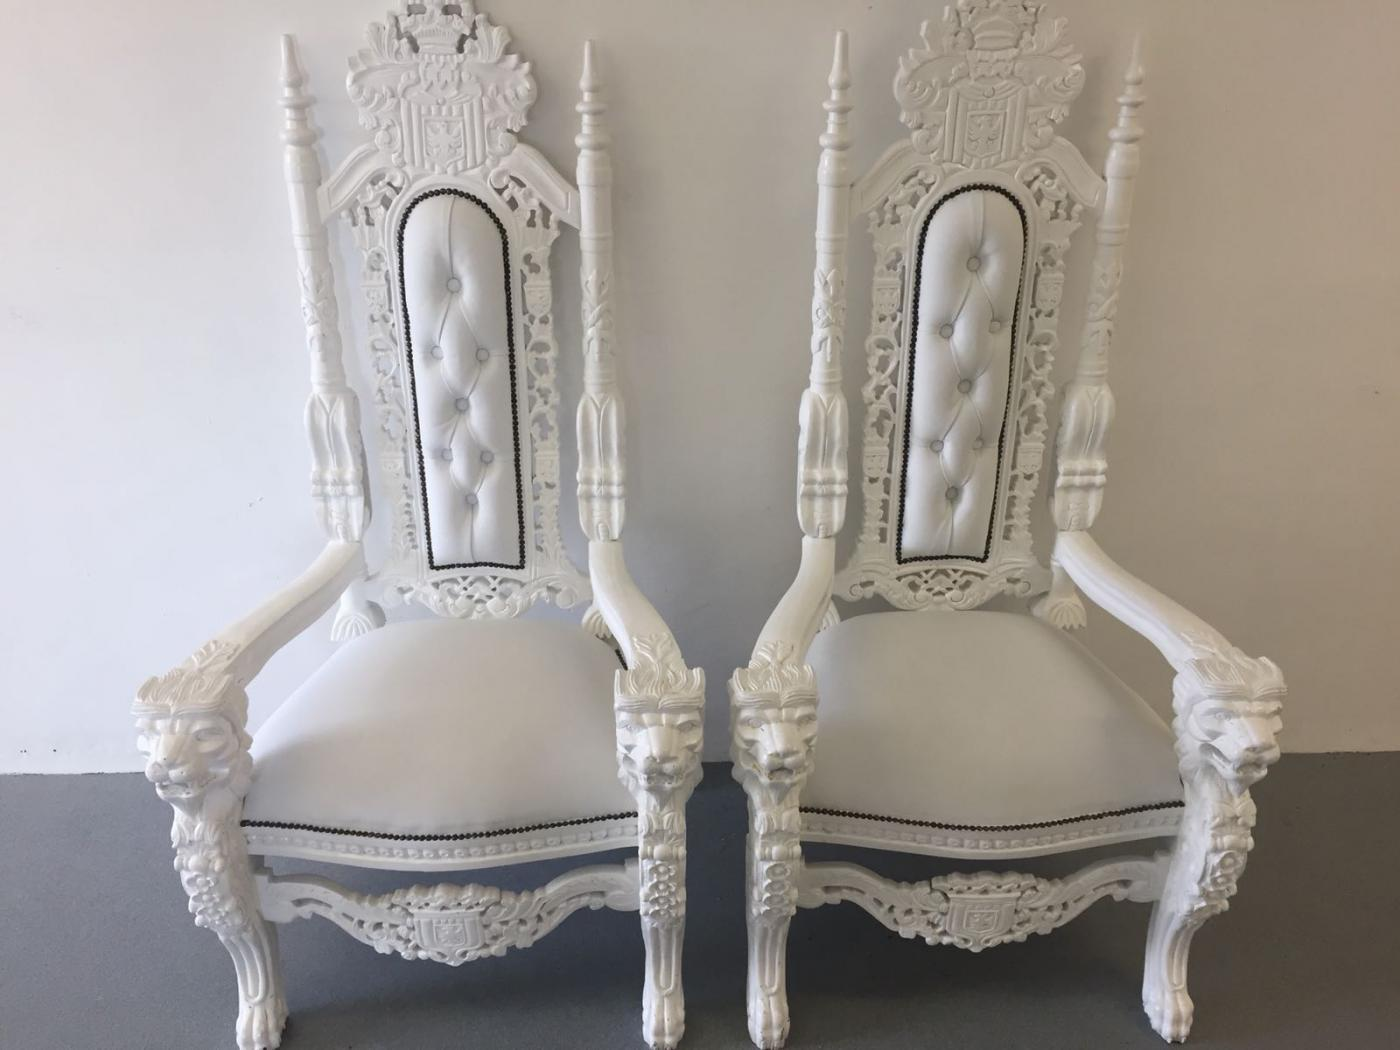 White Throne Chairs for weddings in Norwich